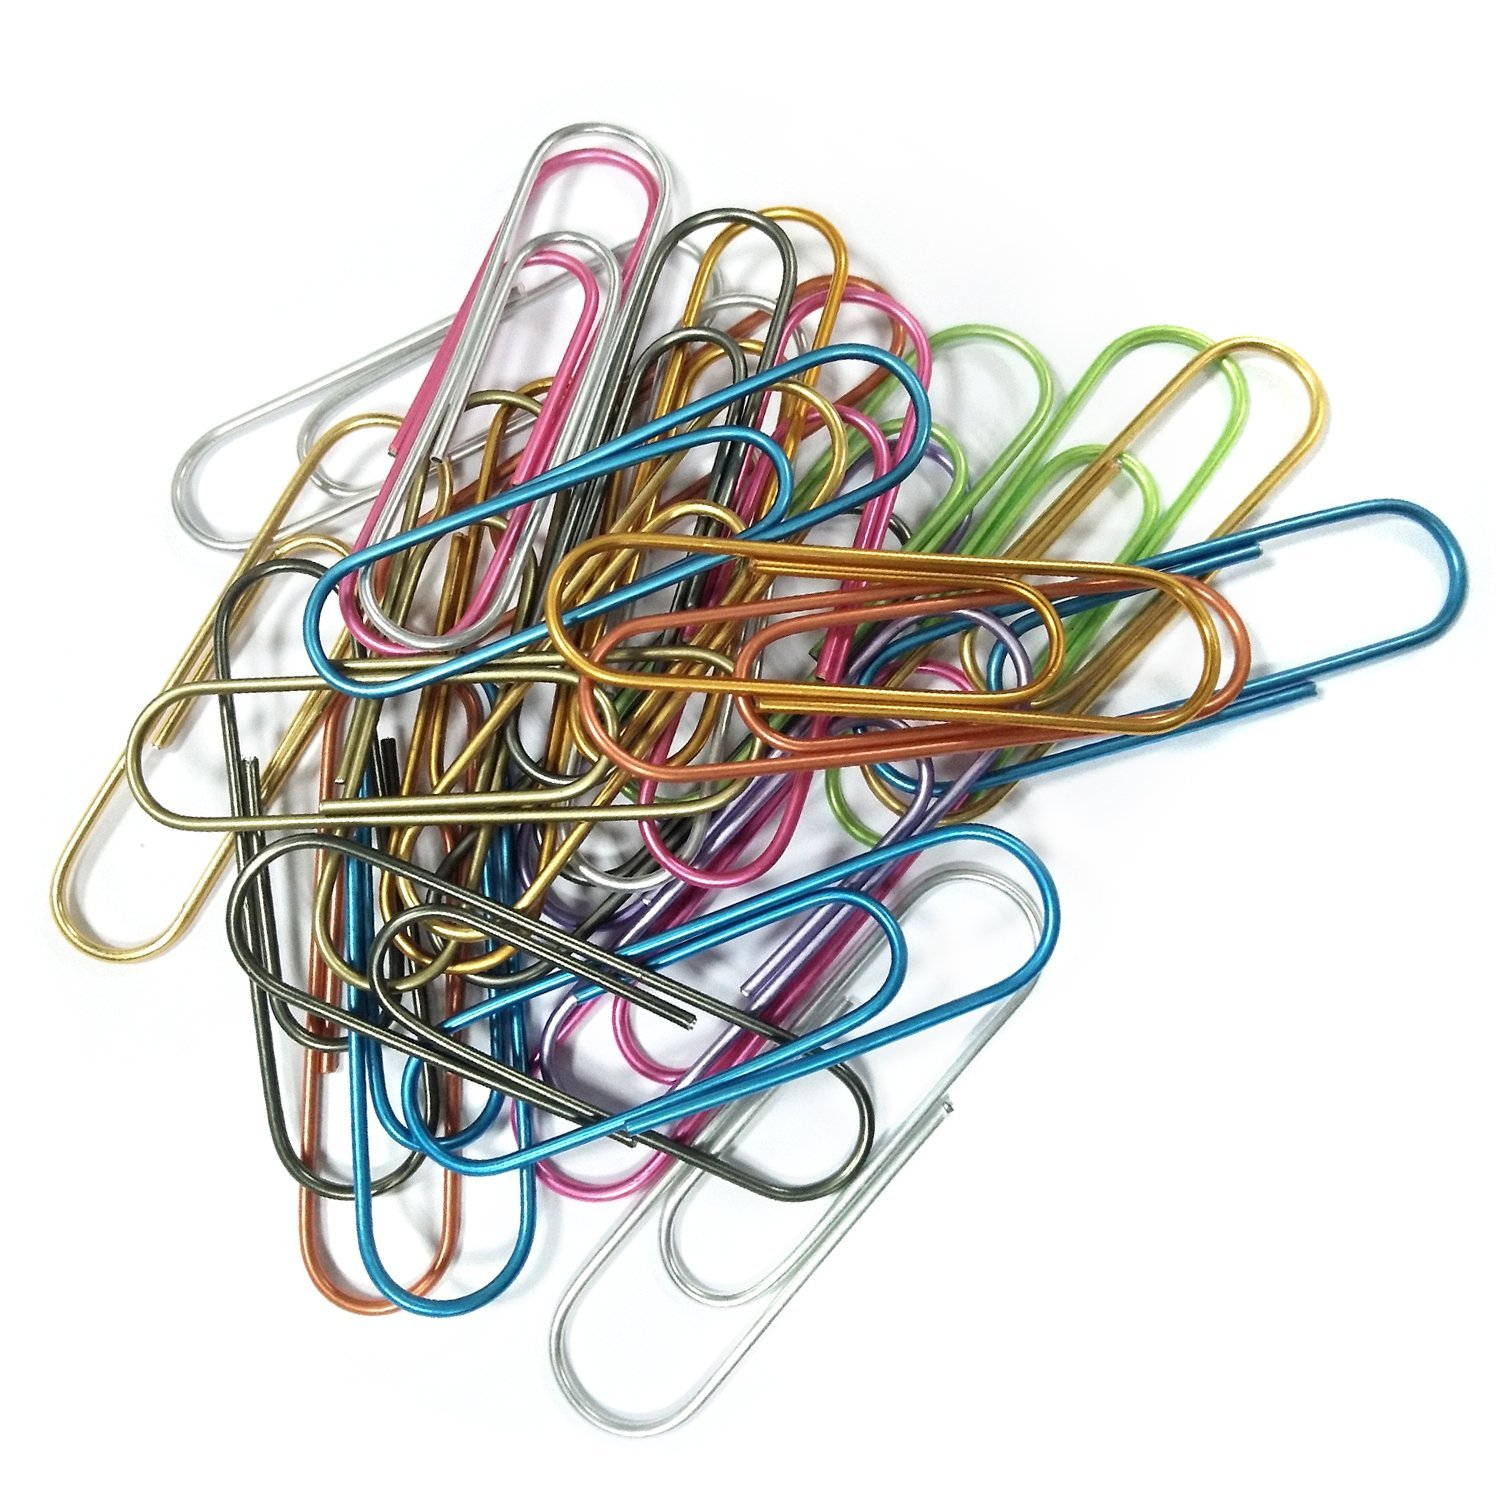 10 cm Multicolored Giant Big Sheet Holder for Files Office Supply Super Large Paper Clips Vinyl Coated Papers Flying Swallow 50 Pack 4 Inch Assorted Color Jumbo Paper Clip Holder